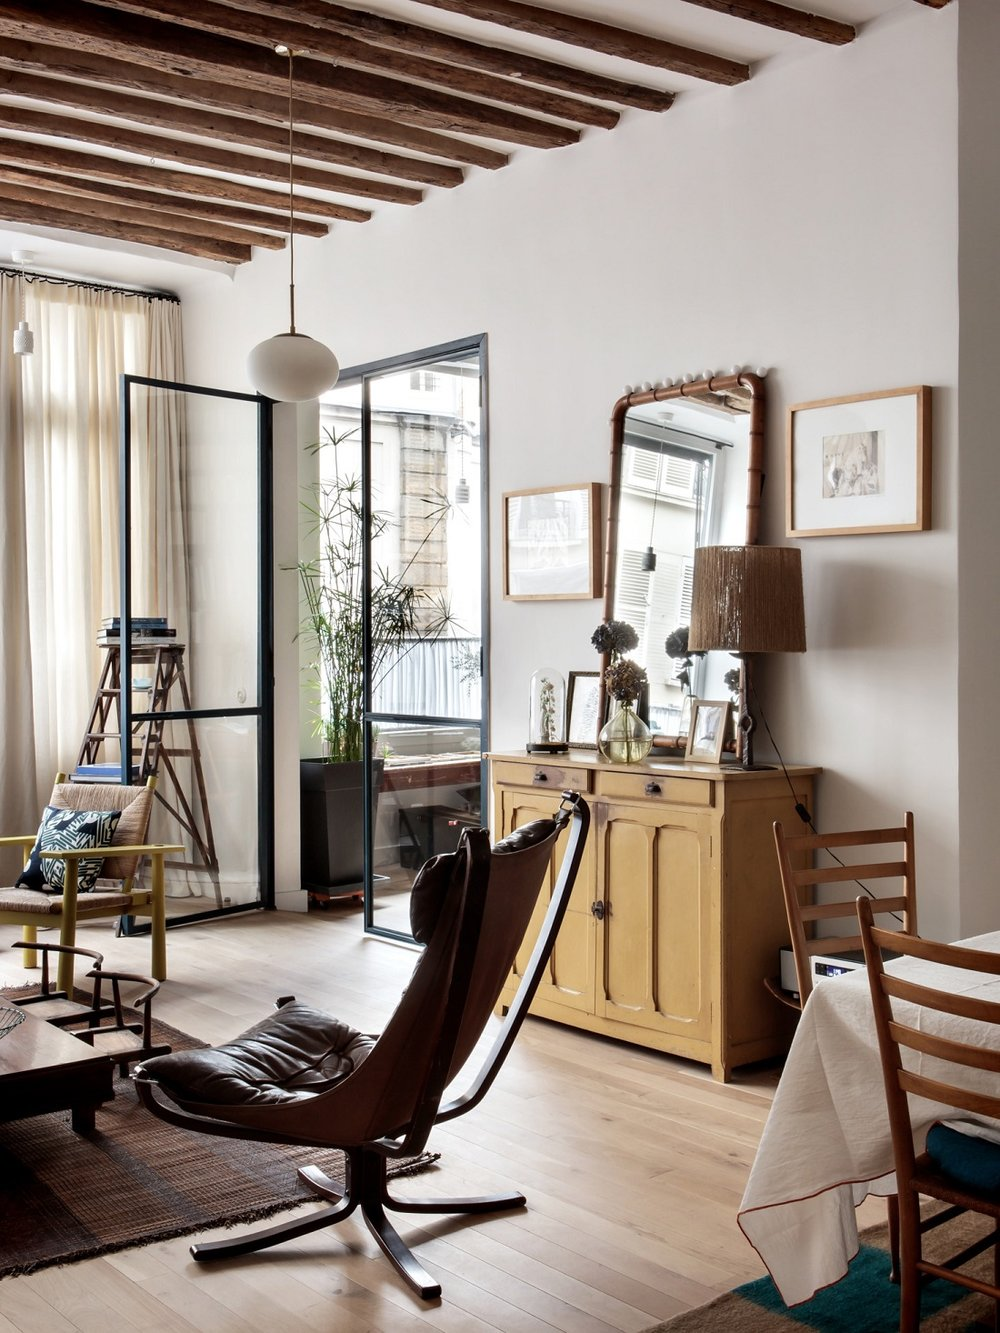 The Nordroom - Original Details and Industrial Touches in a Family Home in Paris